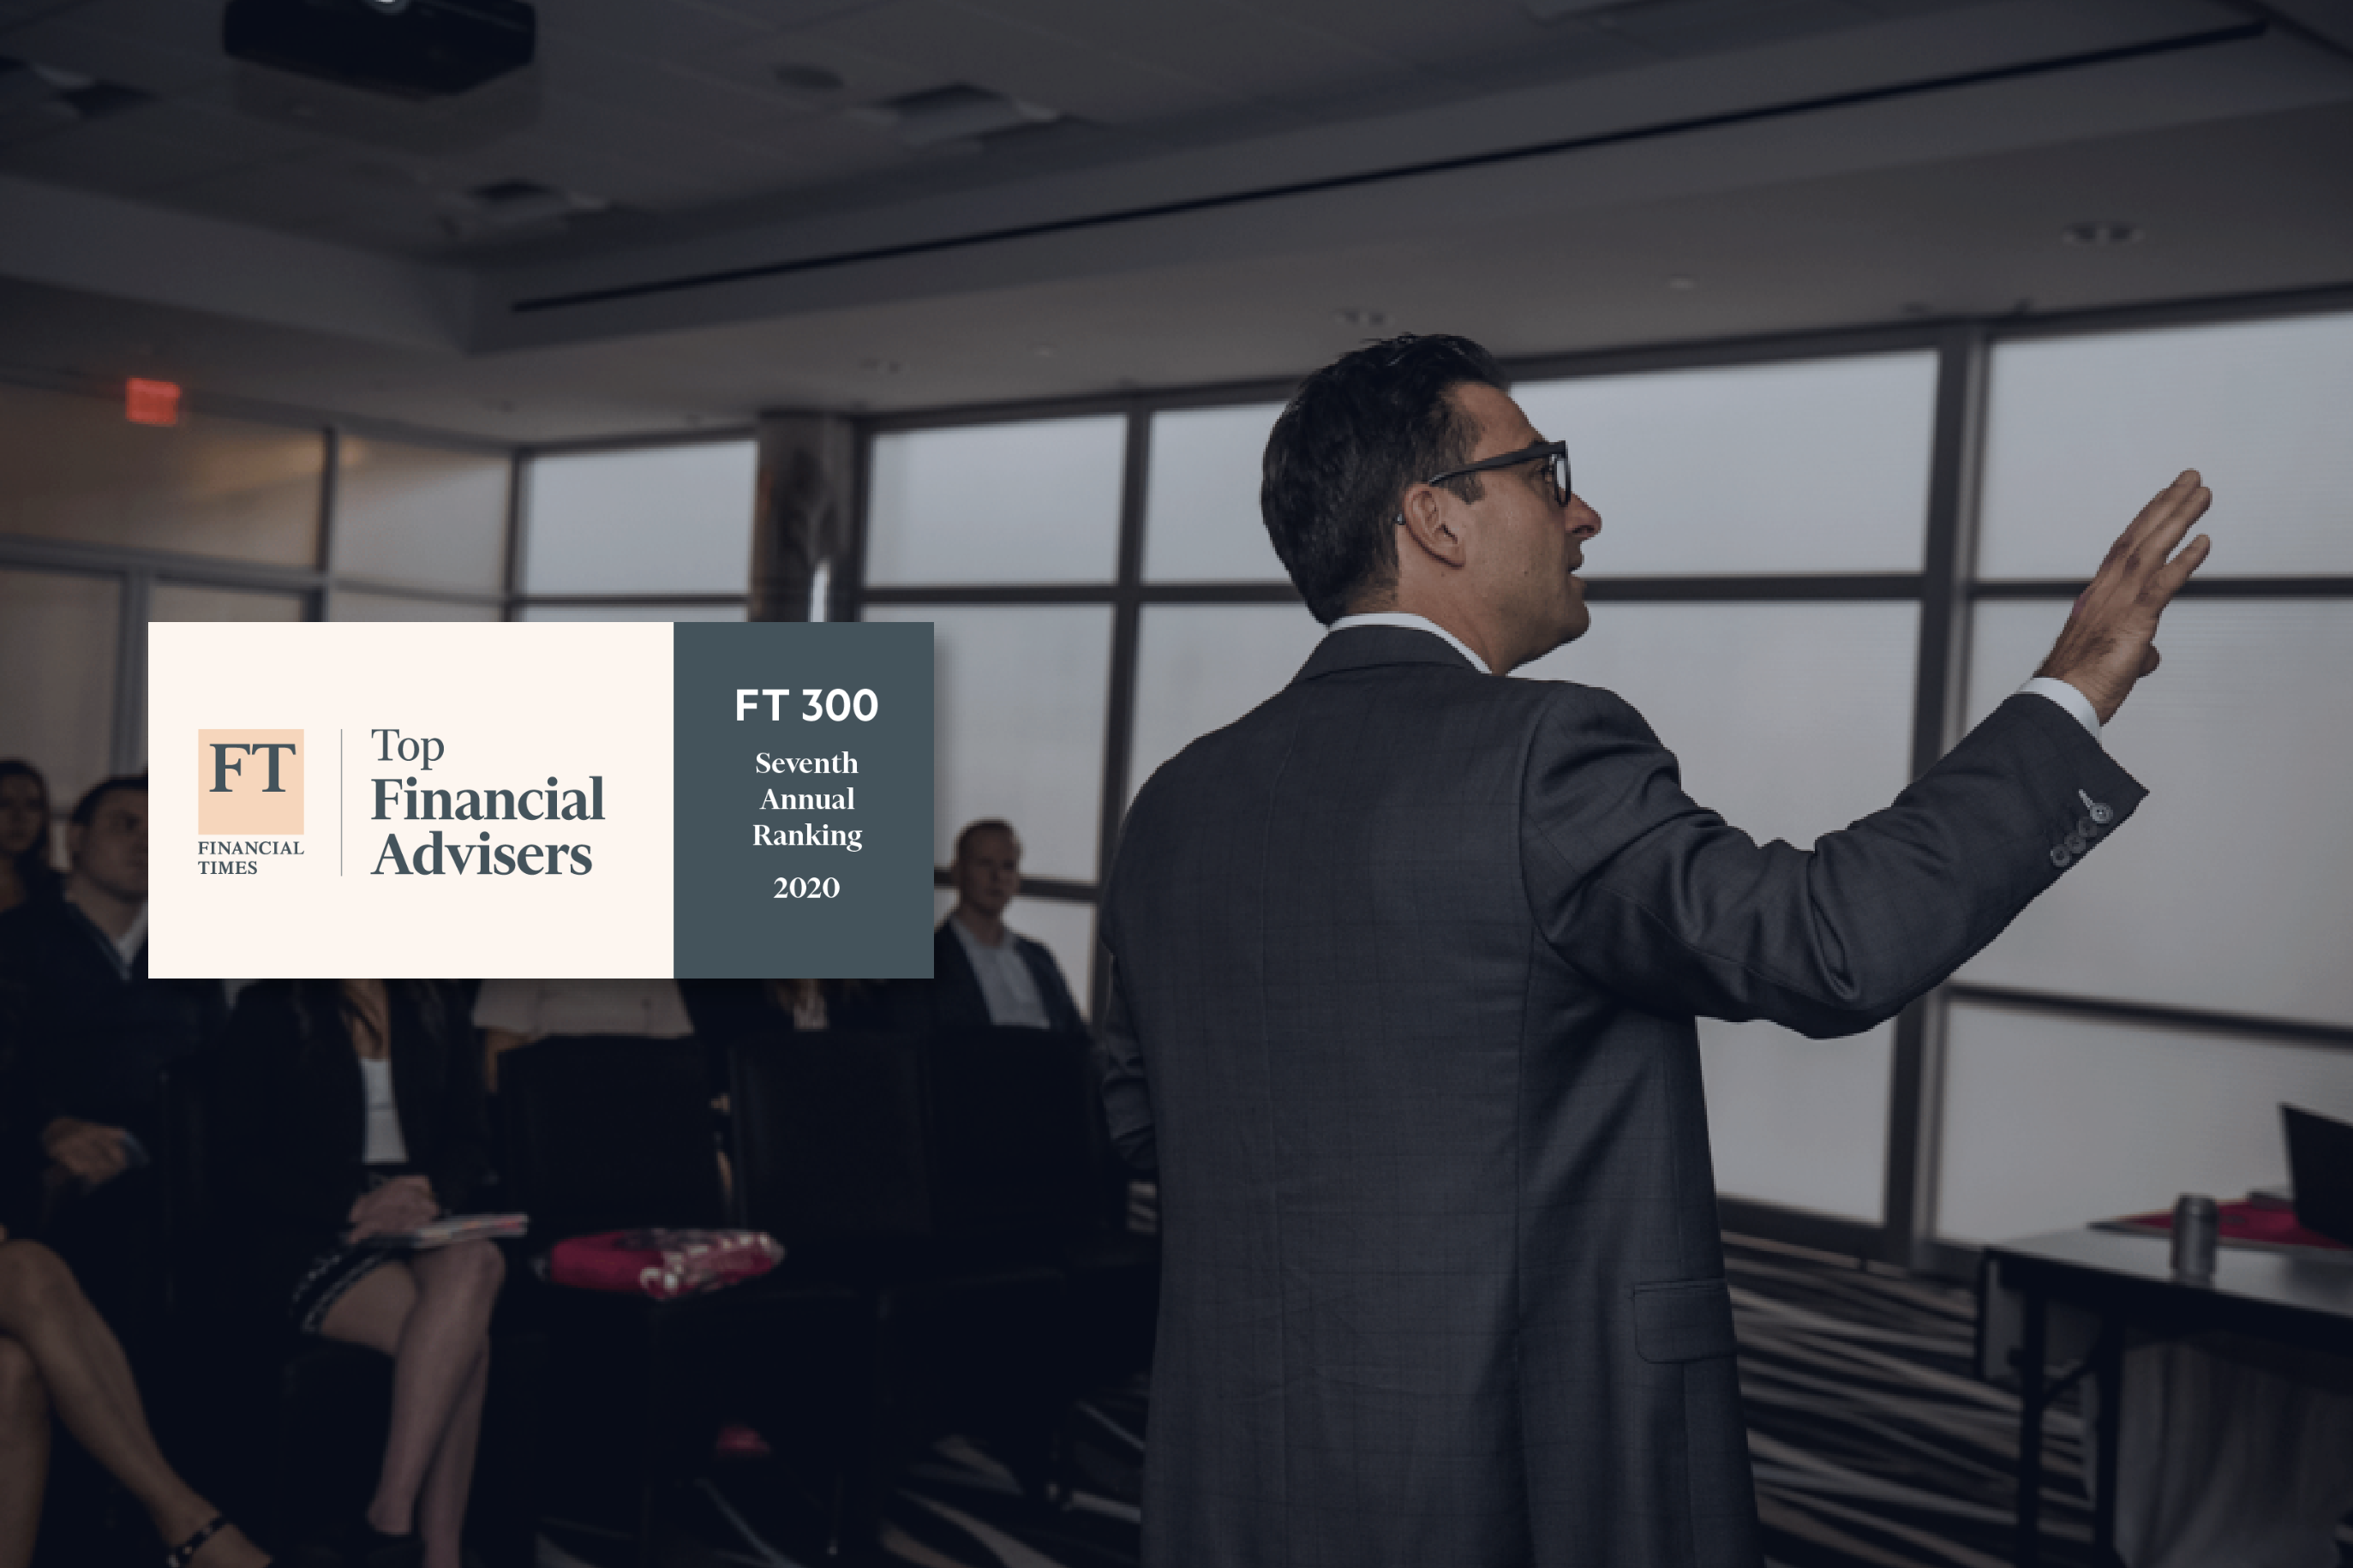 Frank Marzano Top Financial Advisers from the Financial Times 2020